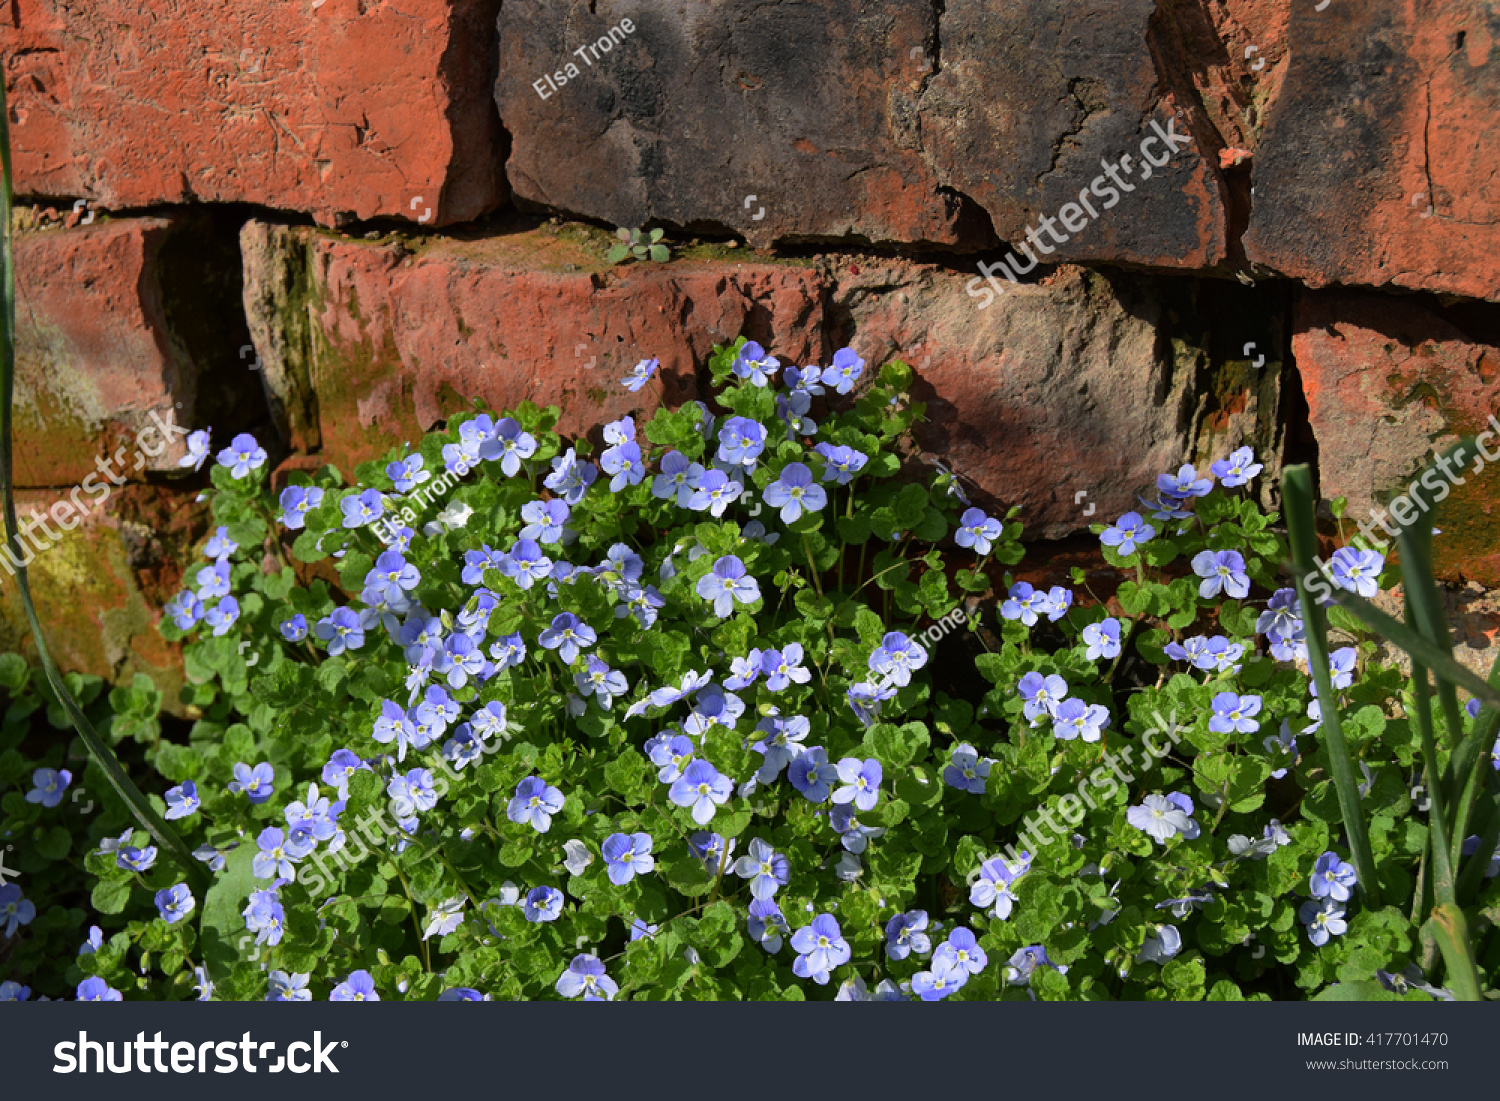 Royalty free small blue flowers of ground cover 417701470 stock small blue flowers of ground cover 417701470 izmirmasajfo